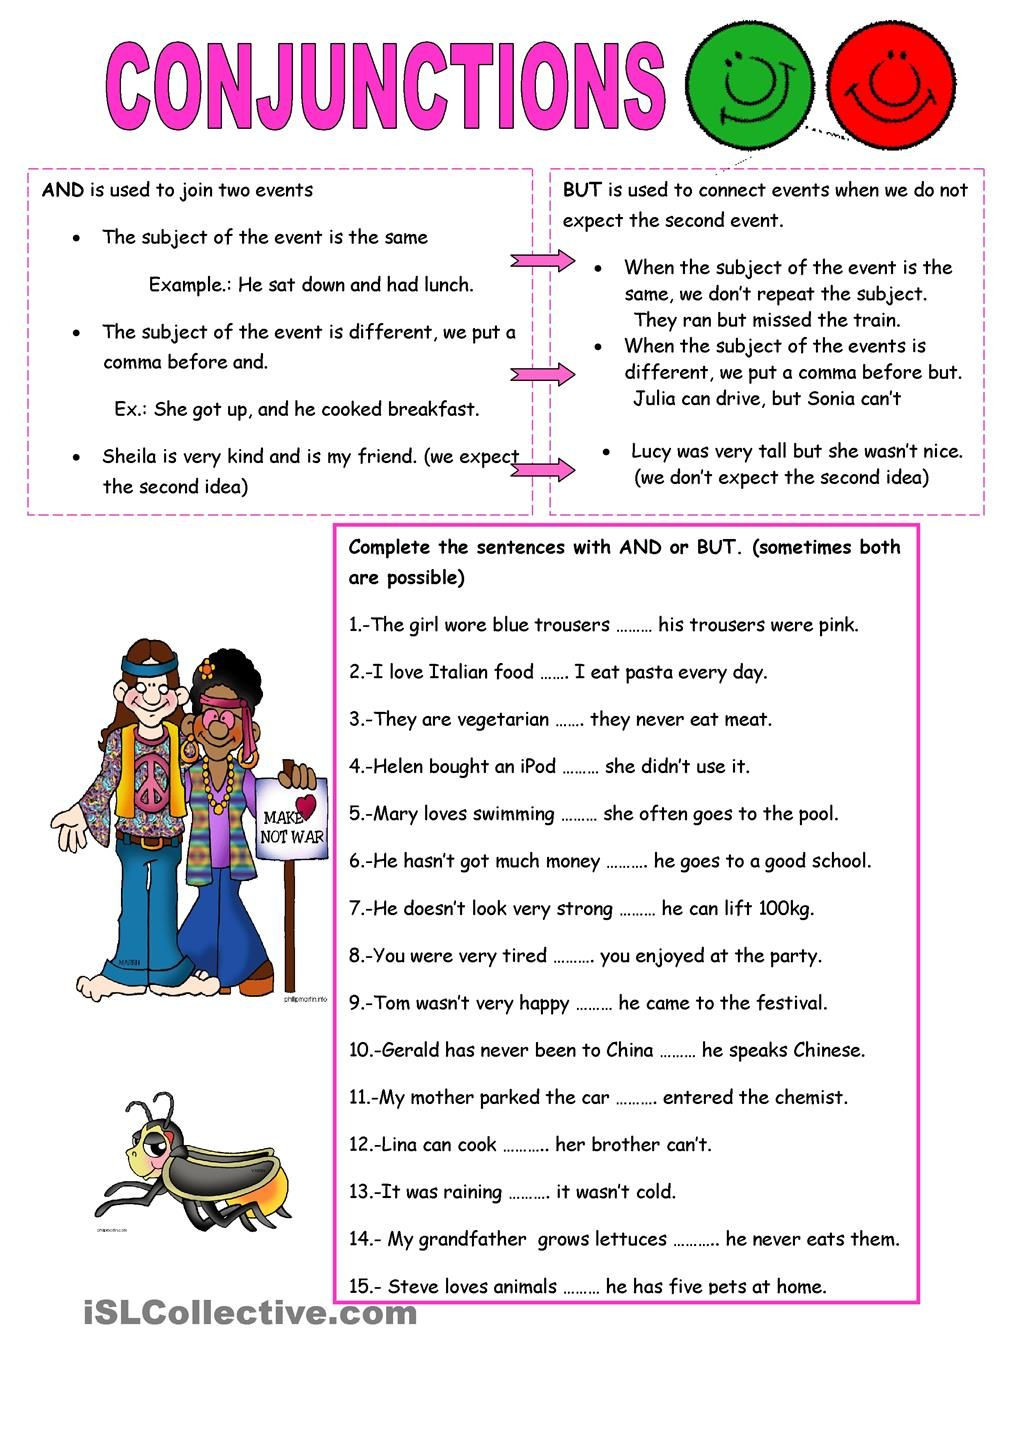 Conjunction Worksheets 6th Grade Conjunctions and but